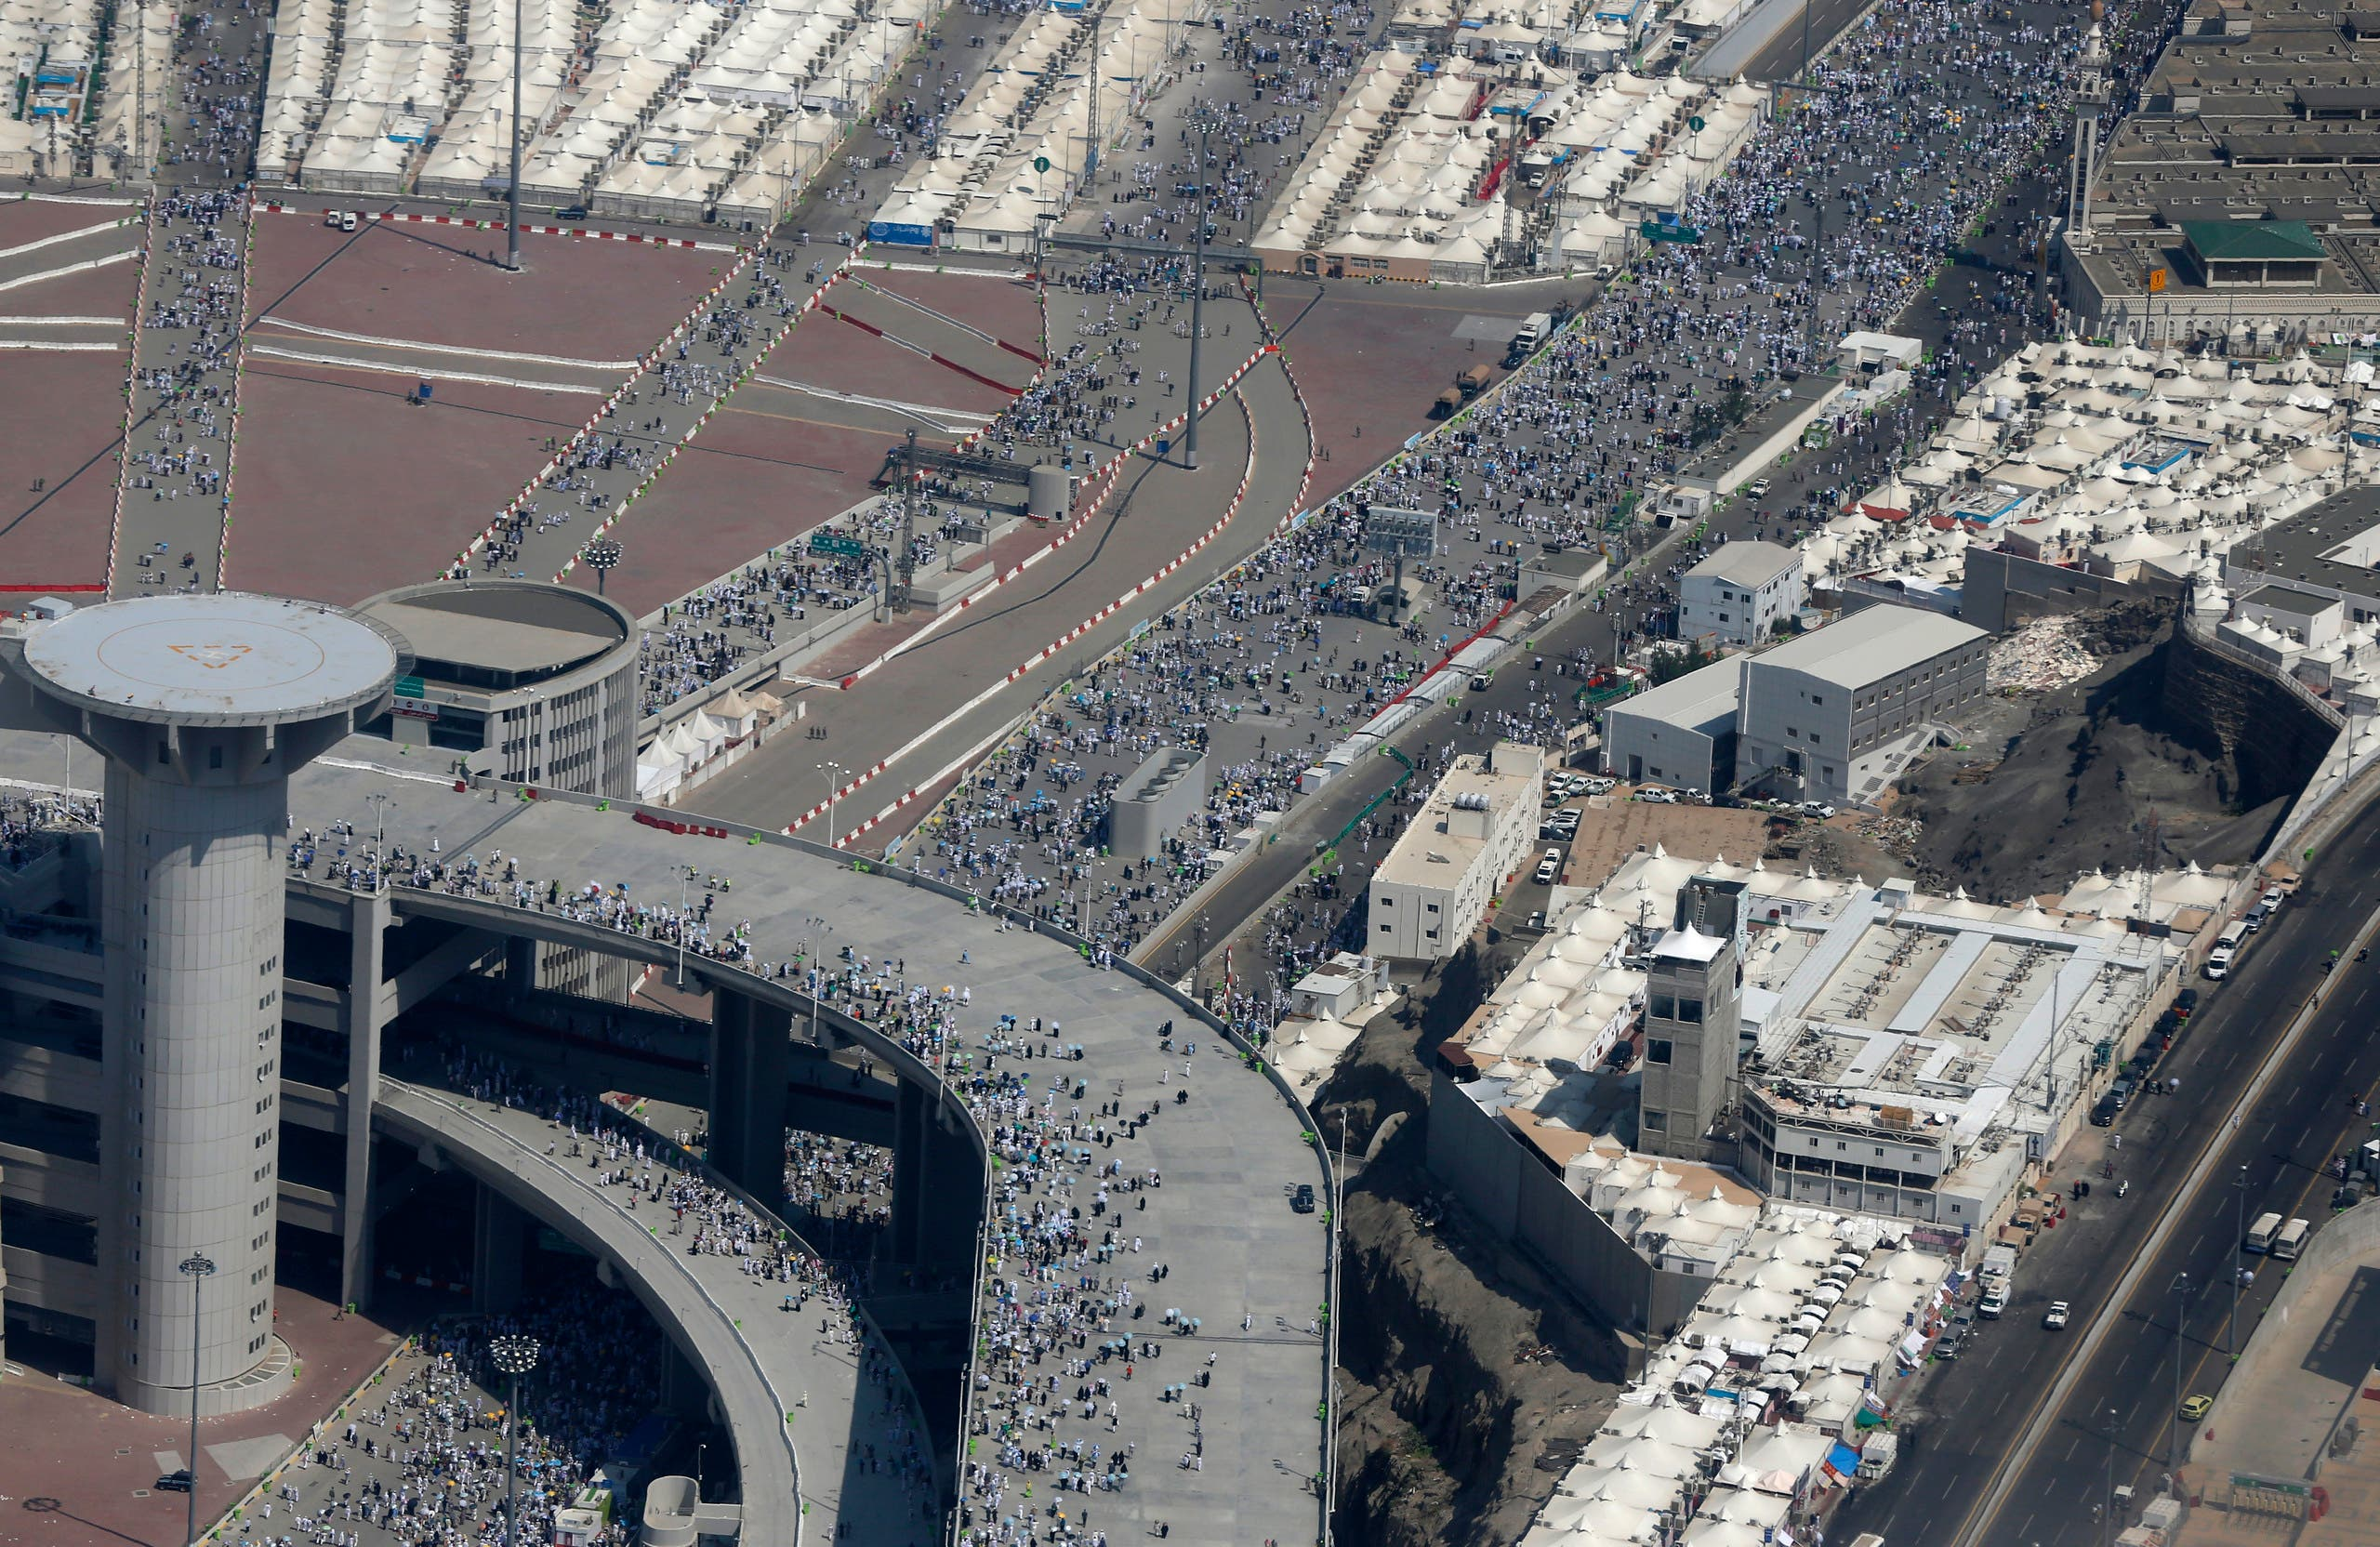 Bird's eye view of the holy pilgrimage